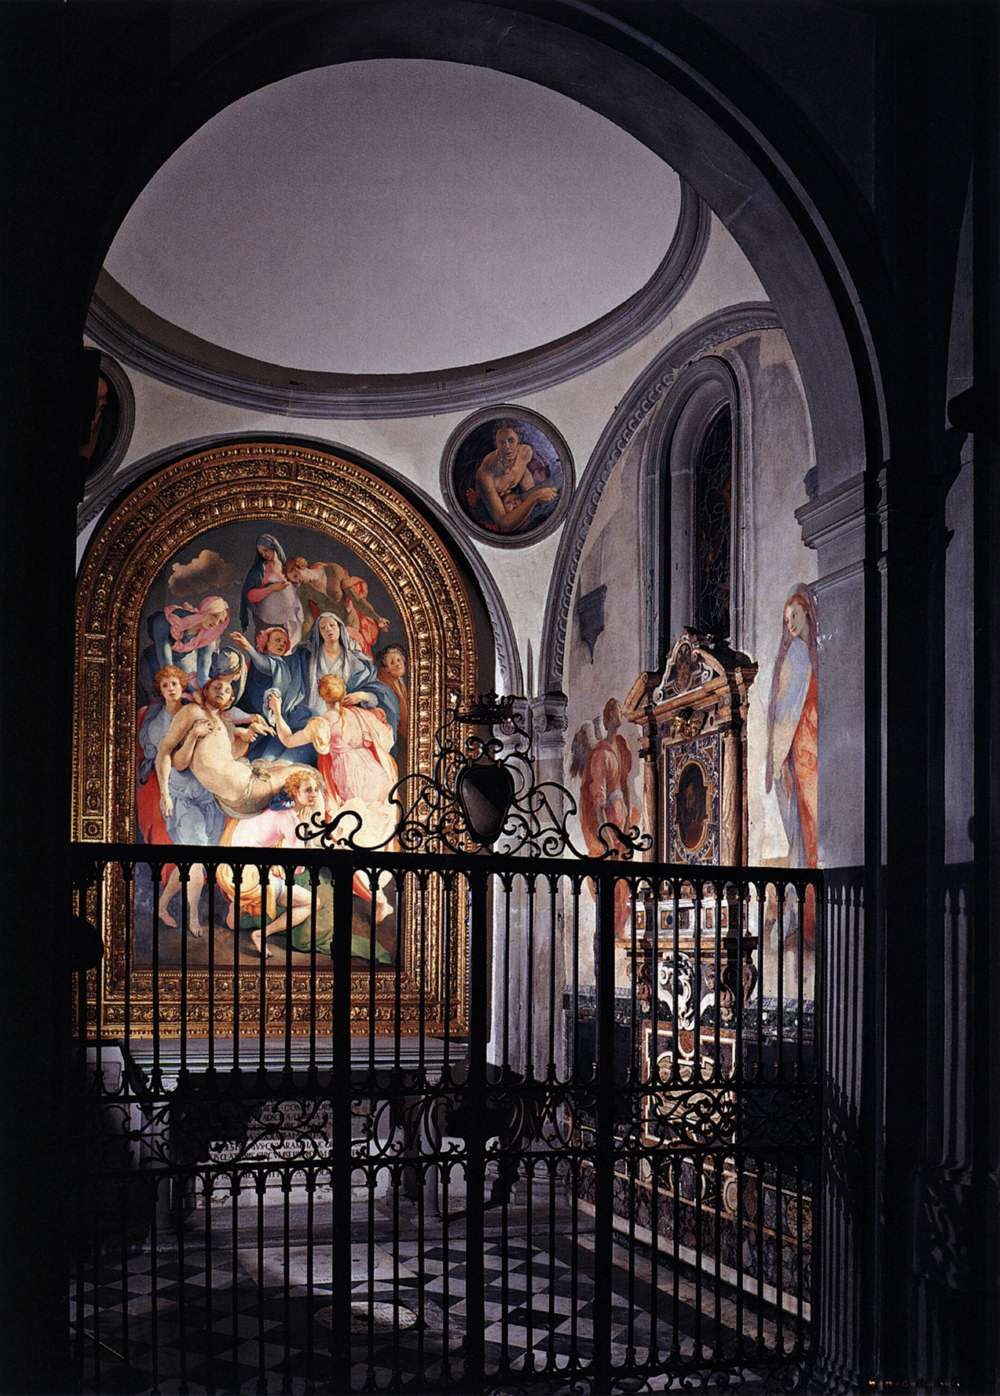 The Capponi Chapel in the church Santa Felicità in Florence, Italy, featuring the breathtaking artwork of Jacopo Pontormo, 15